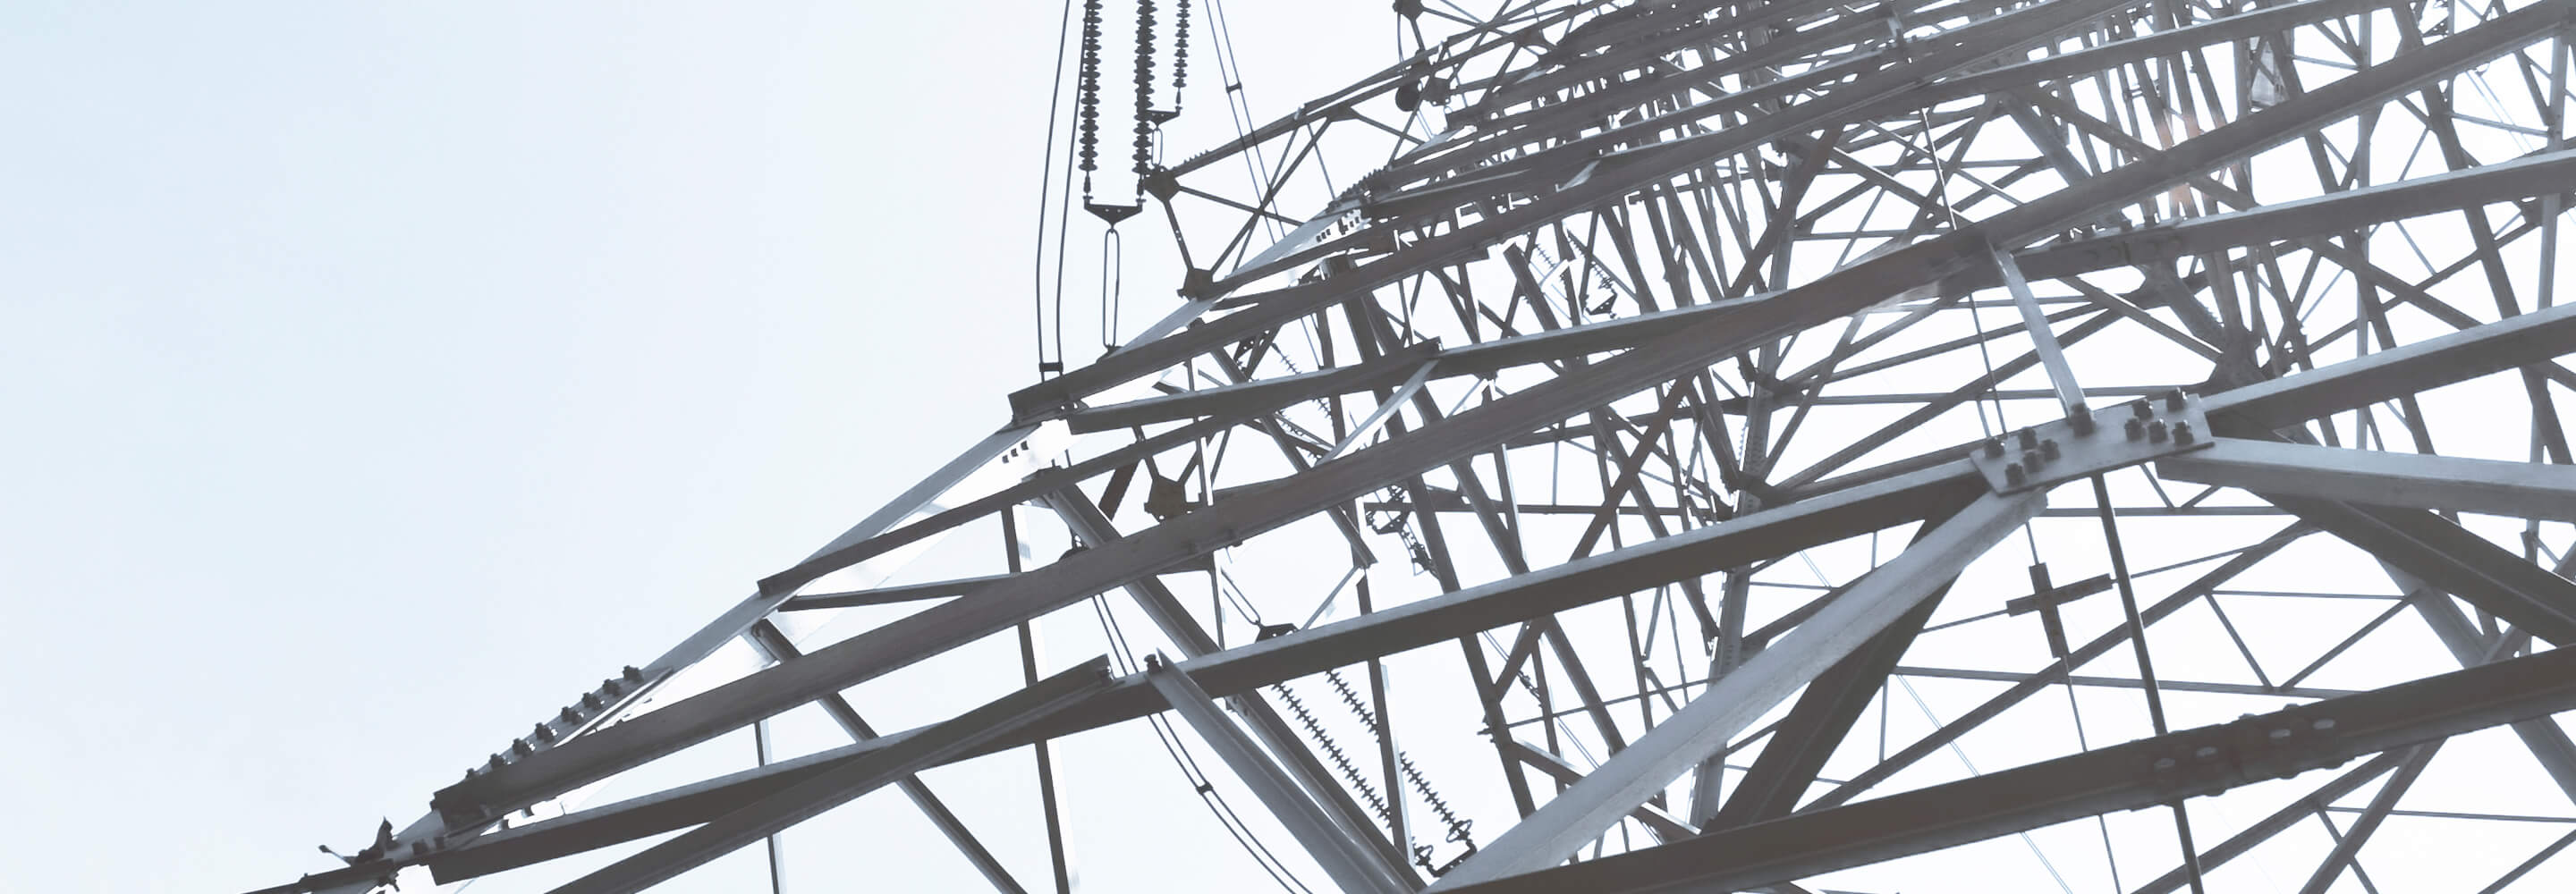 transmission-power-tower